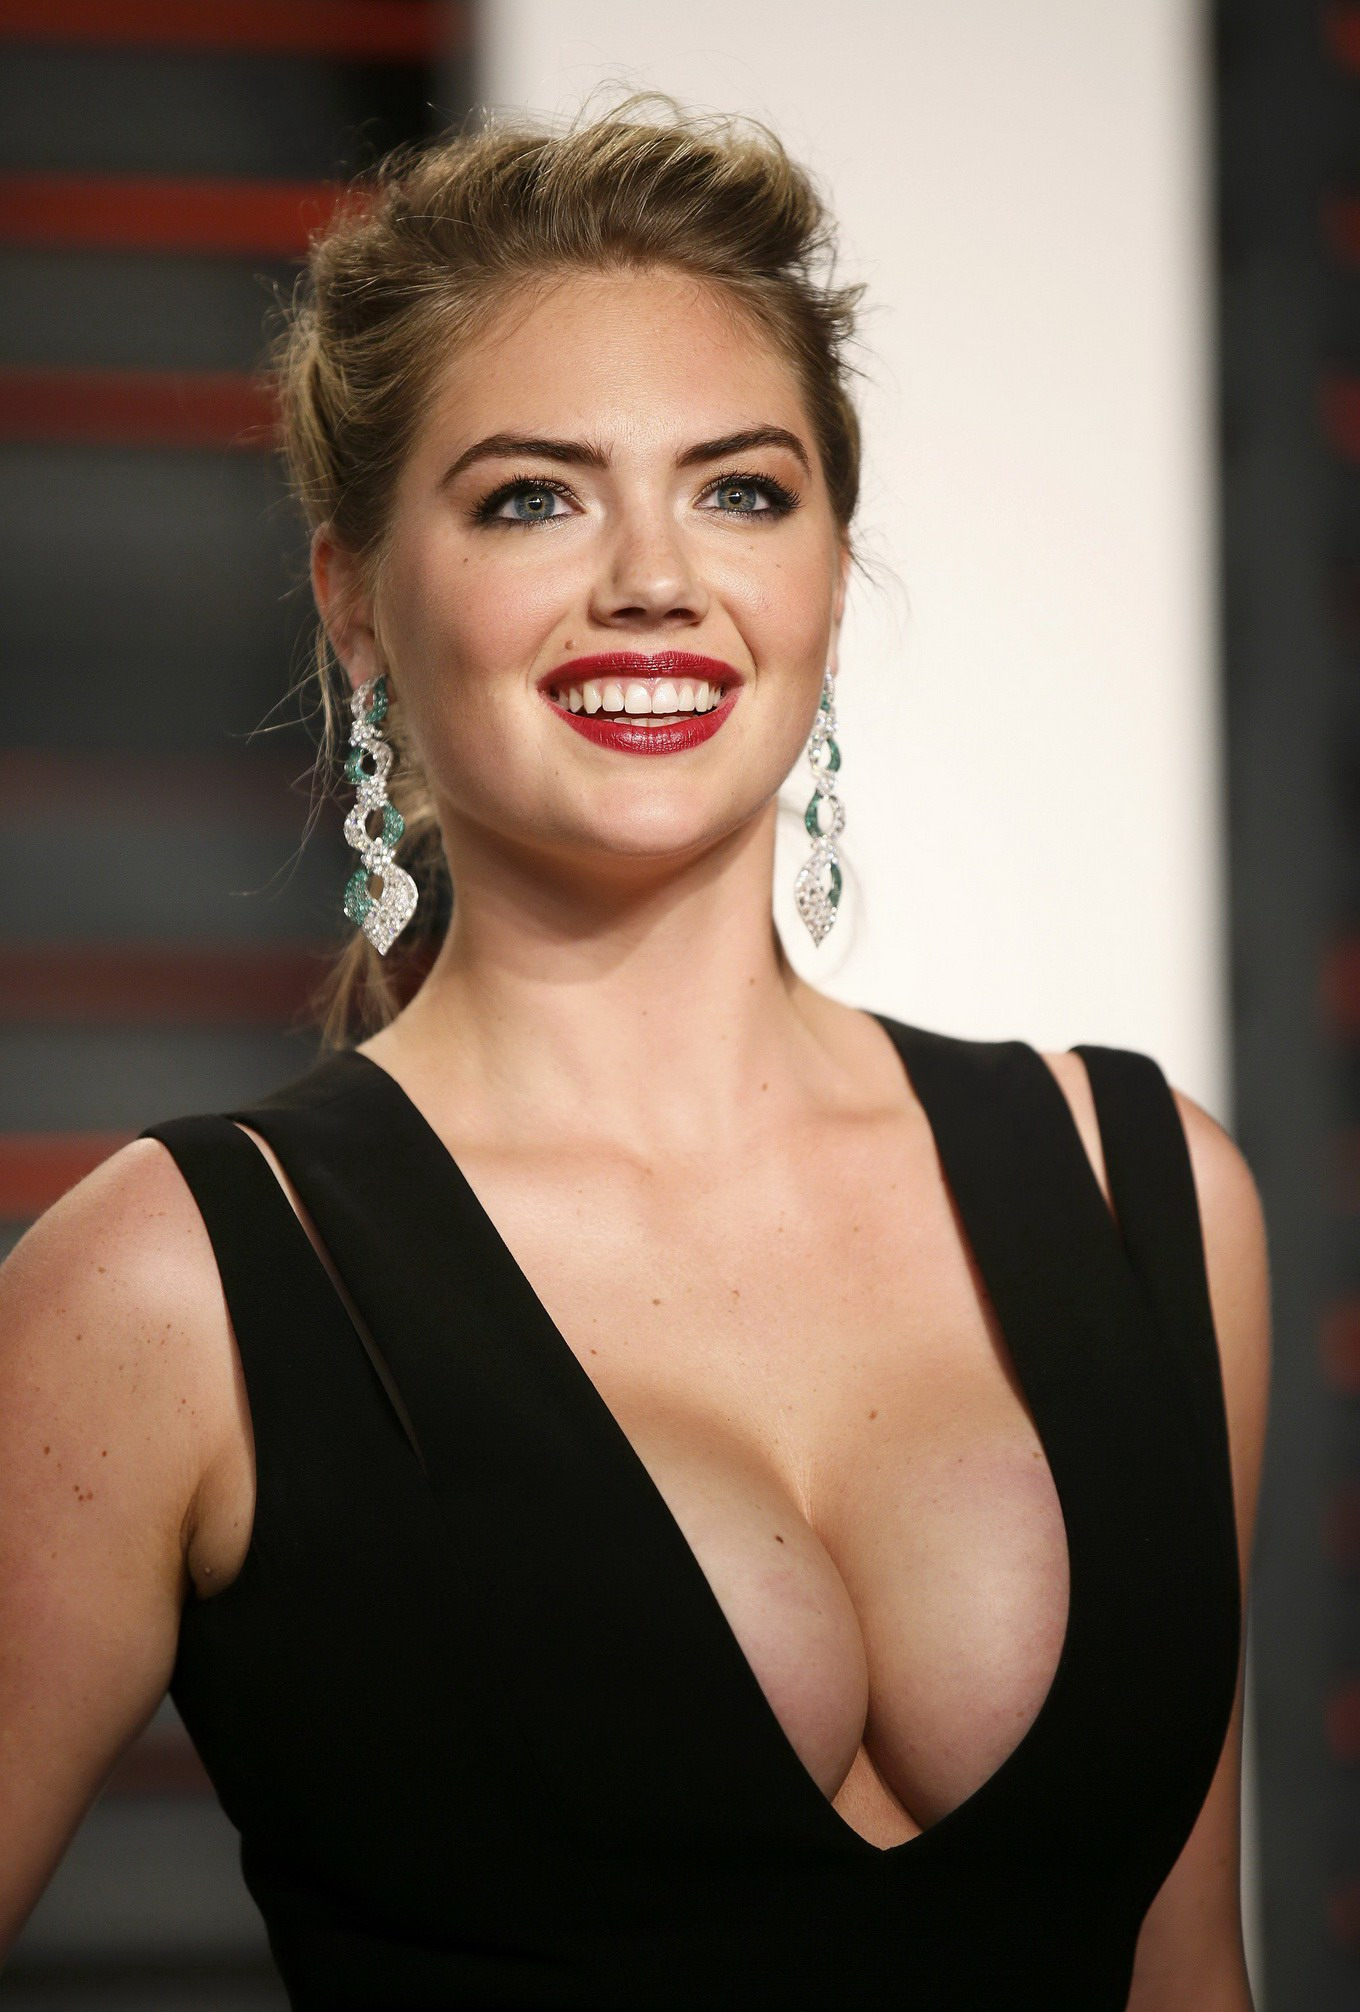 kate upton flaunting her huge boobs in a low cut black dress at the